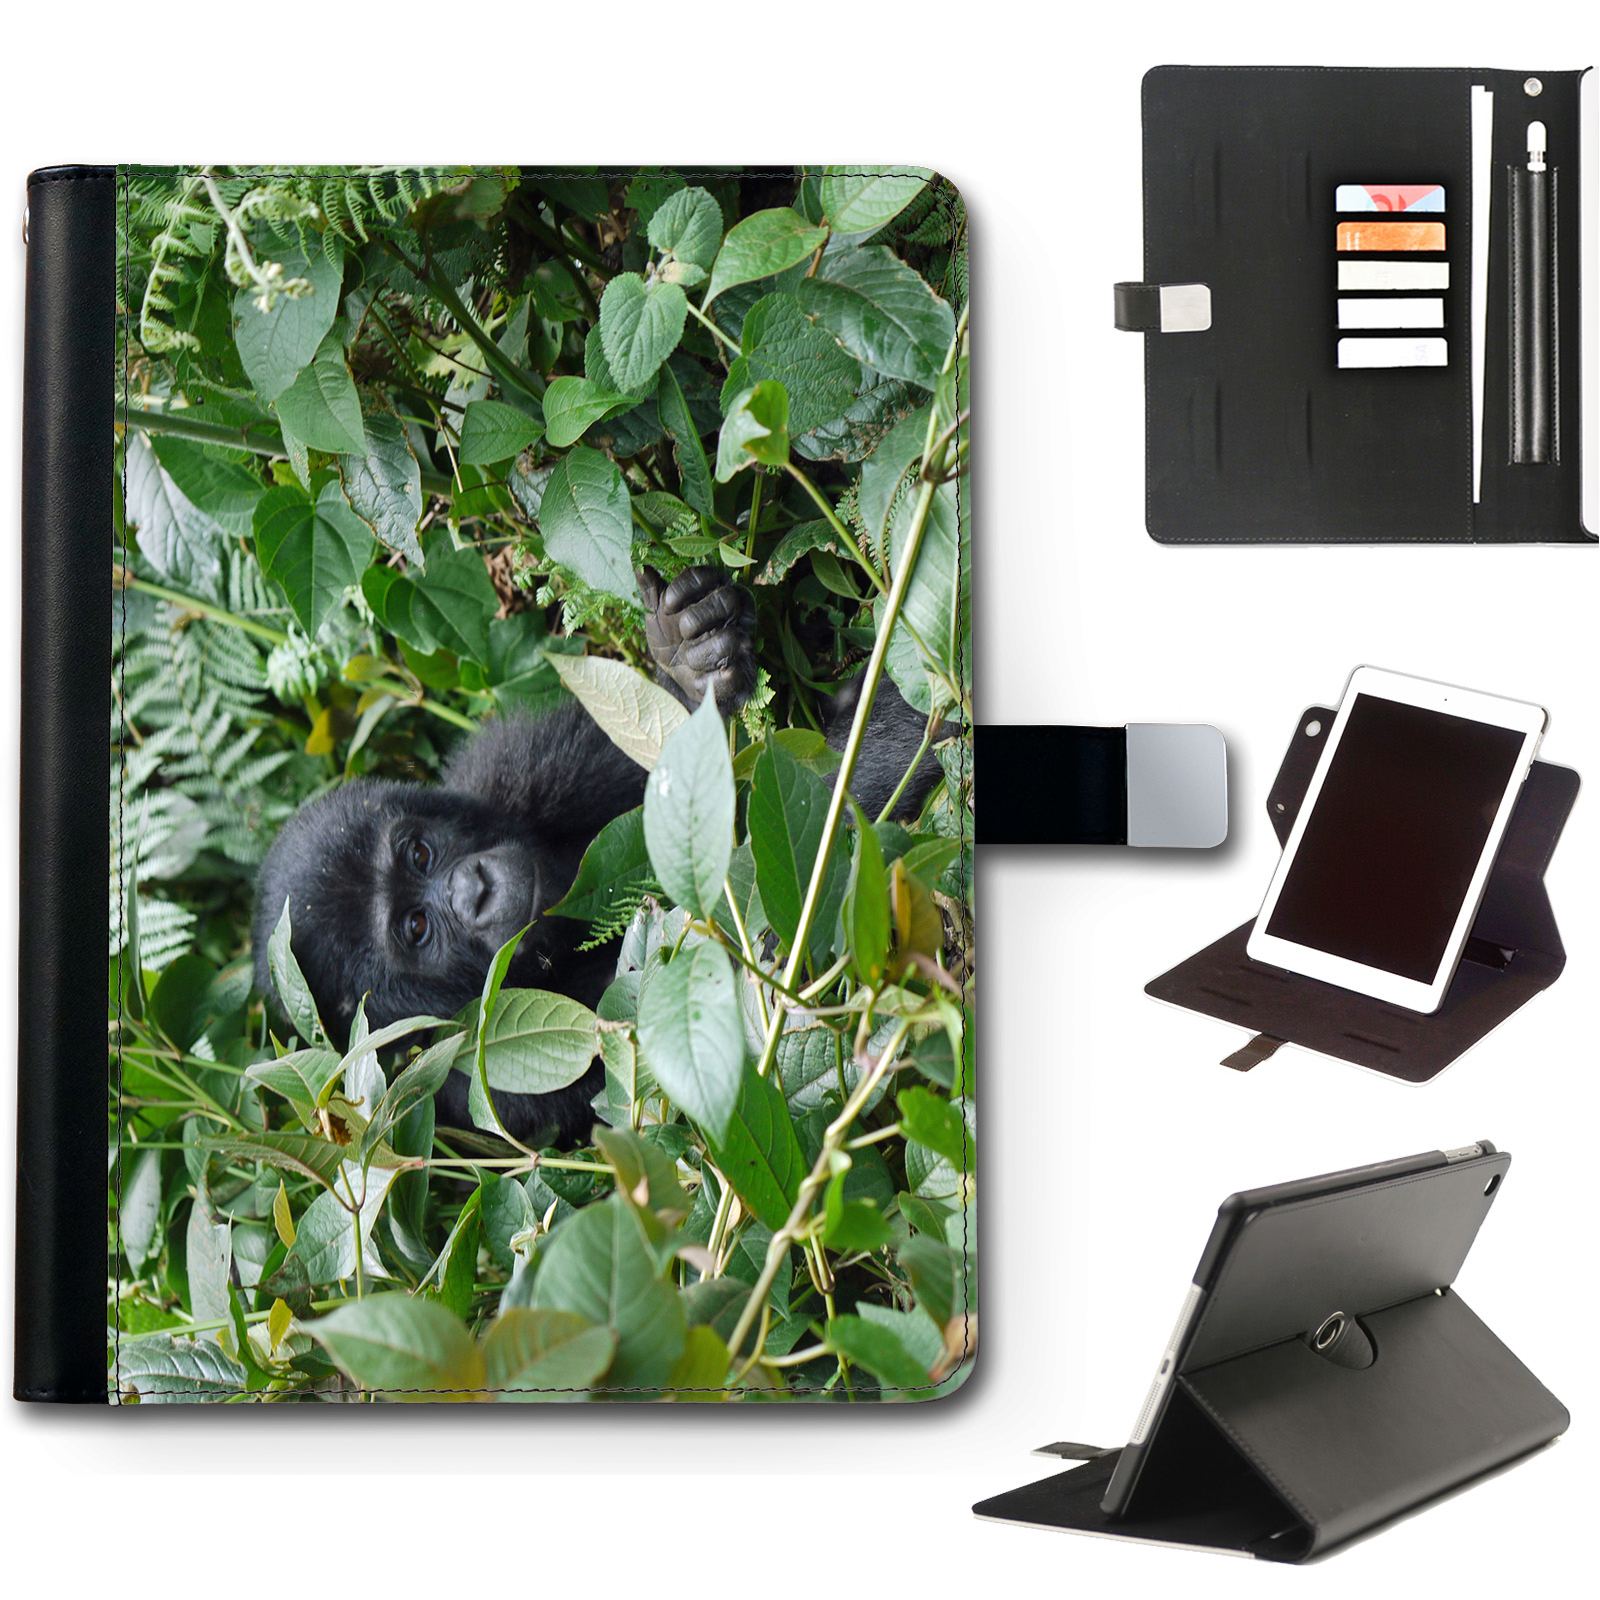 HAIRYWORM-ZOO-ANIMALS-APPLE-IPAD-LEATHER-CASE-360-SWIVEL-TABLET-COVER-FOR-I-PAD